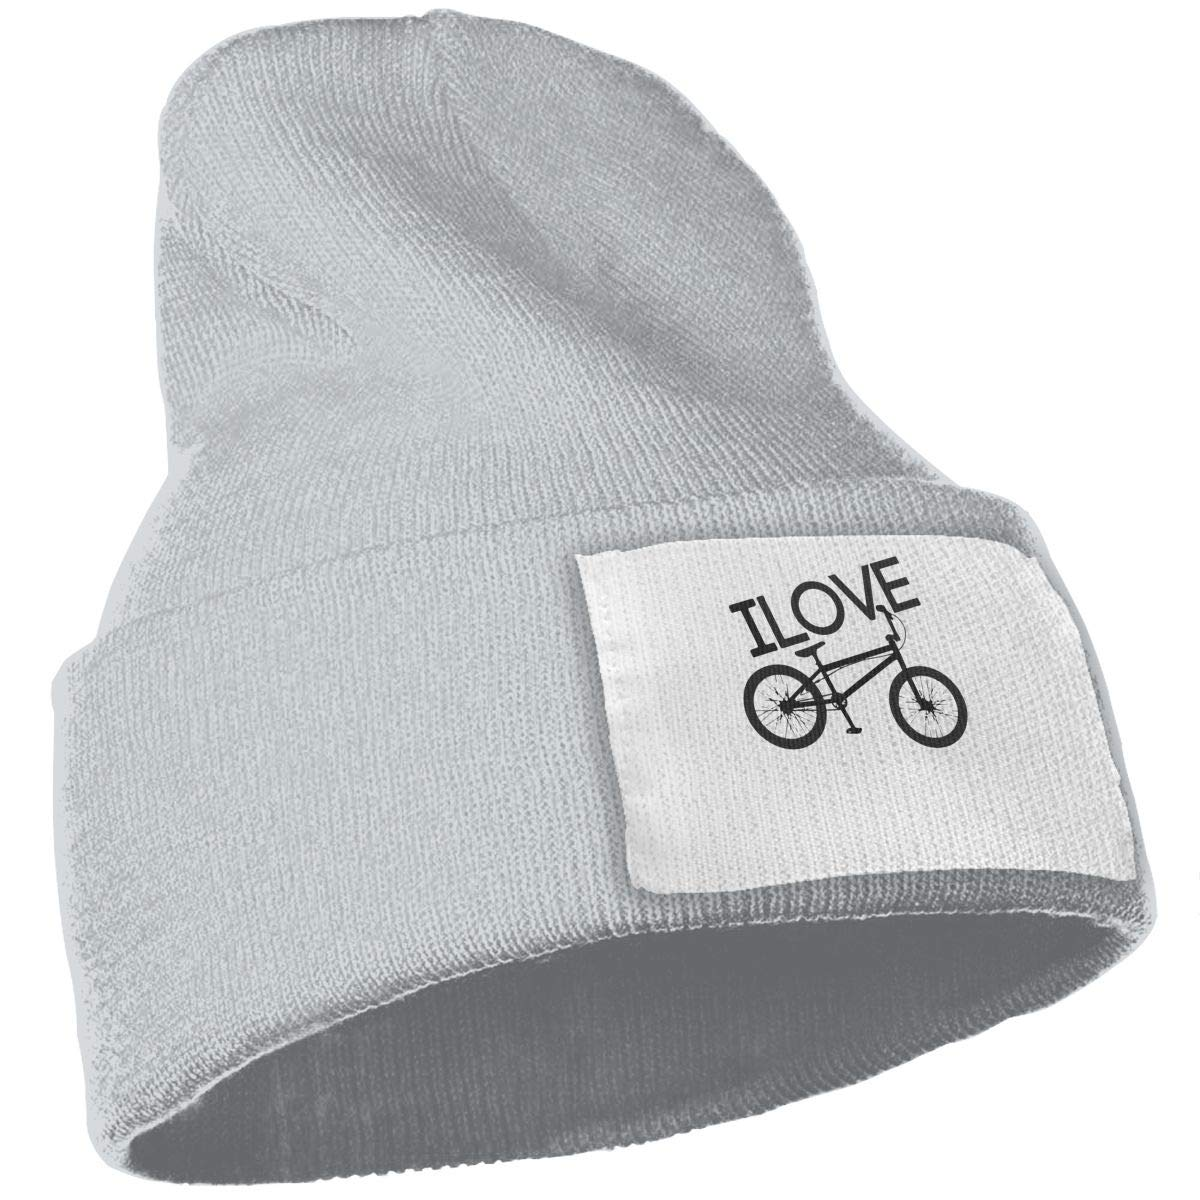 Heart Love Bicycle Unisex Fashion Knitted Hat Luxury Hip-Hop Cap